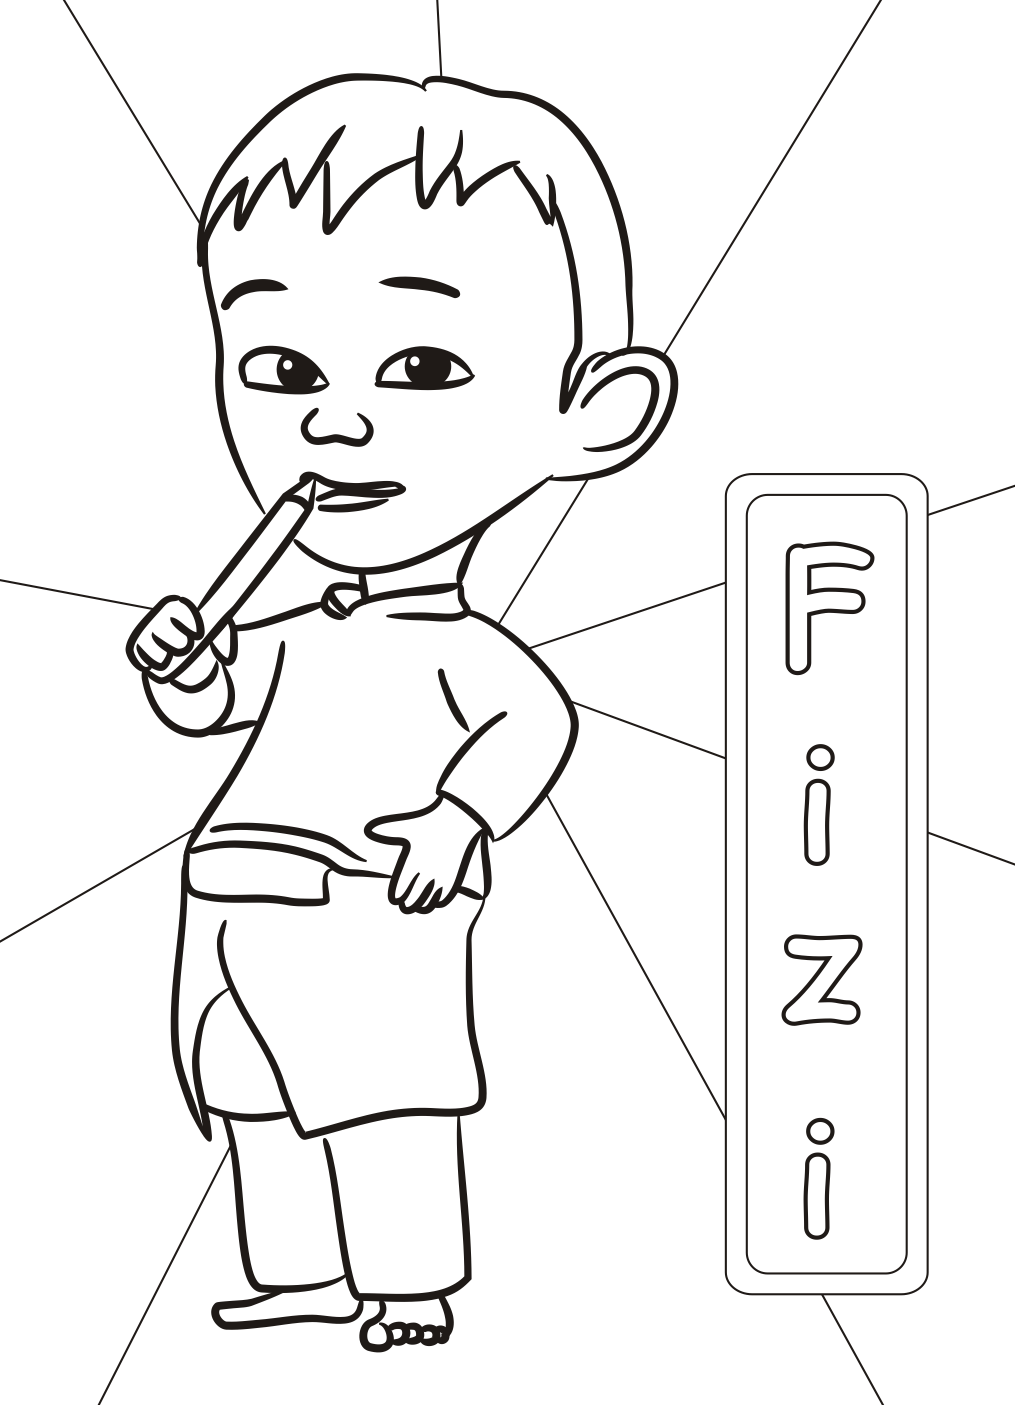 Mobile shimmer and shine coloring games coloring pages ausmalbilder - Upin Ipin Coloring Pages Complete Coloring Pages